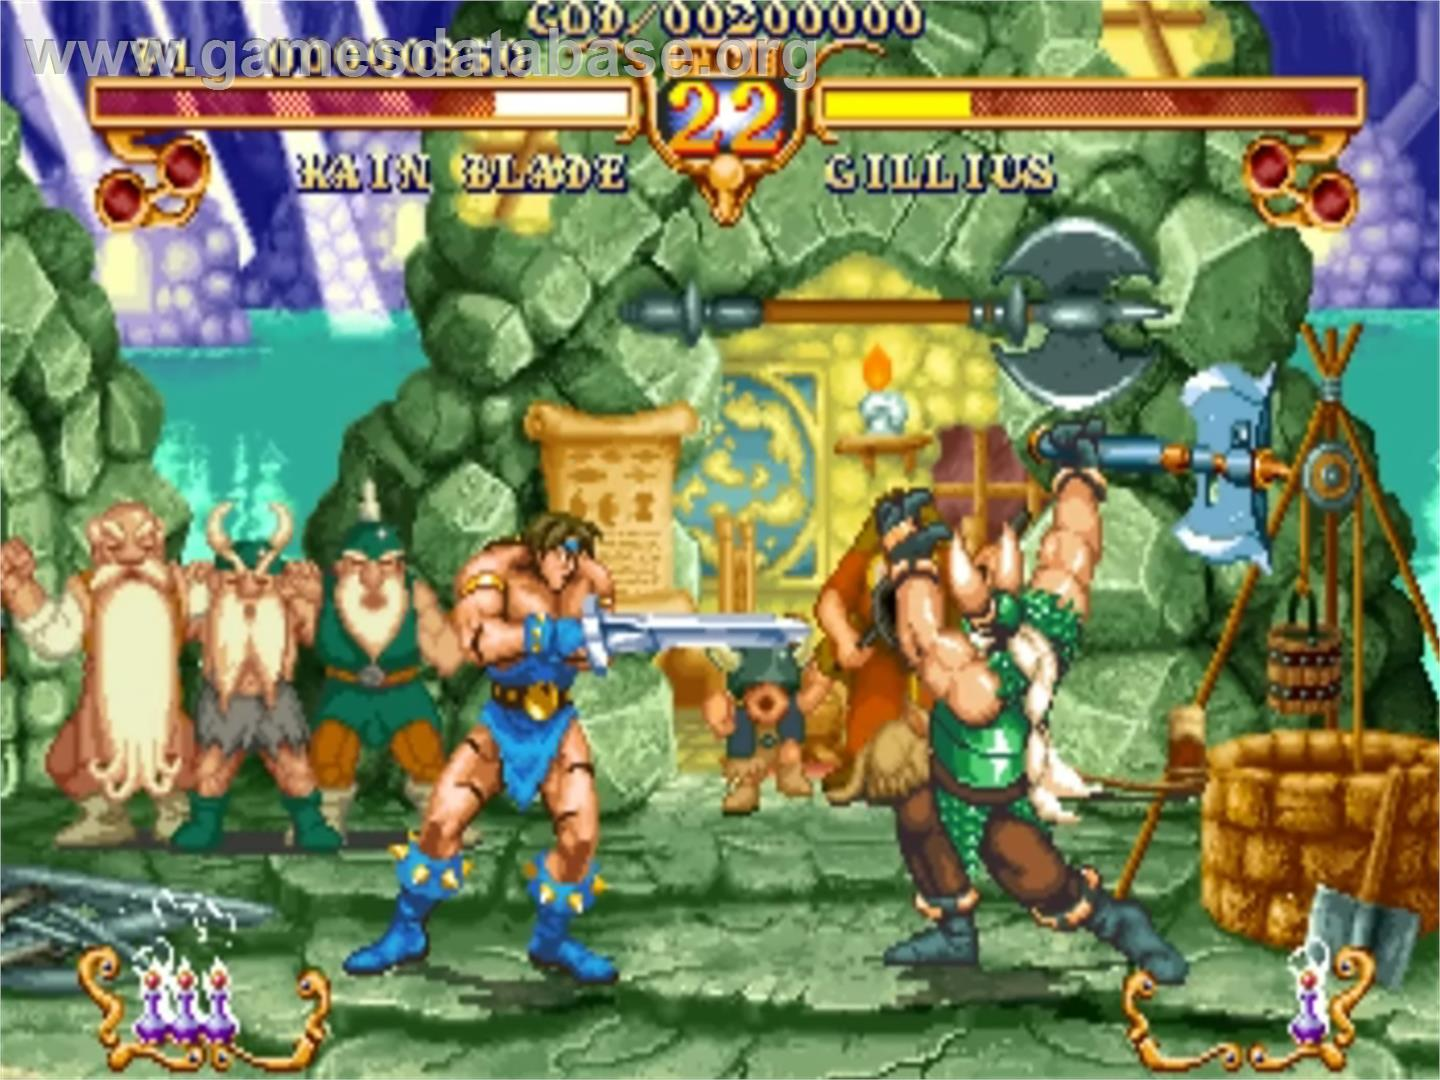 Golden Axe - The Duel - Sega ST-V - Artwork - In Game